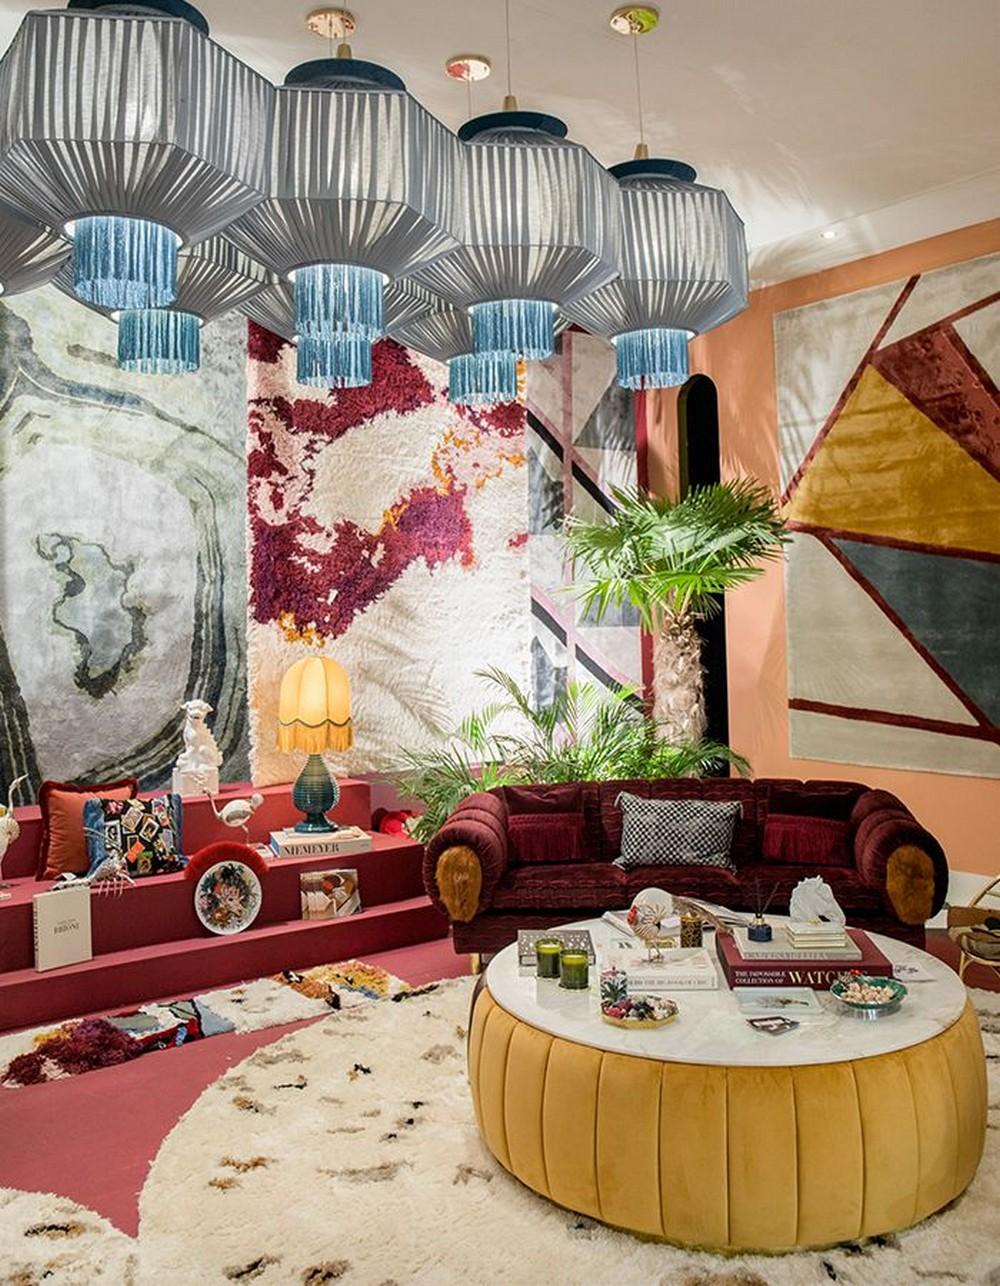 Top Luxury Design Brands You Can't Miss At Maison et Objet 2020 maison et objet Top Luxury Design Brands You Can't Miss At Maison et Objet 2020 Top Luxury Design Brands You Cant Miss At Maison et Objet 2020 3